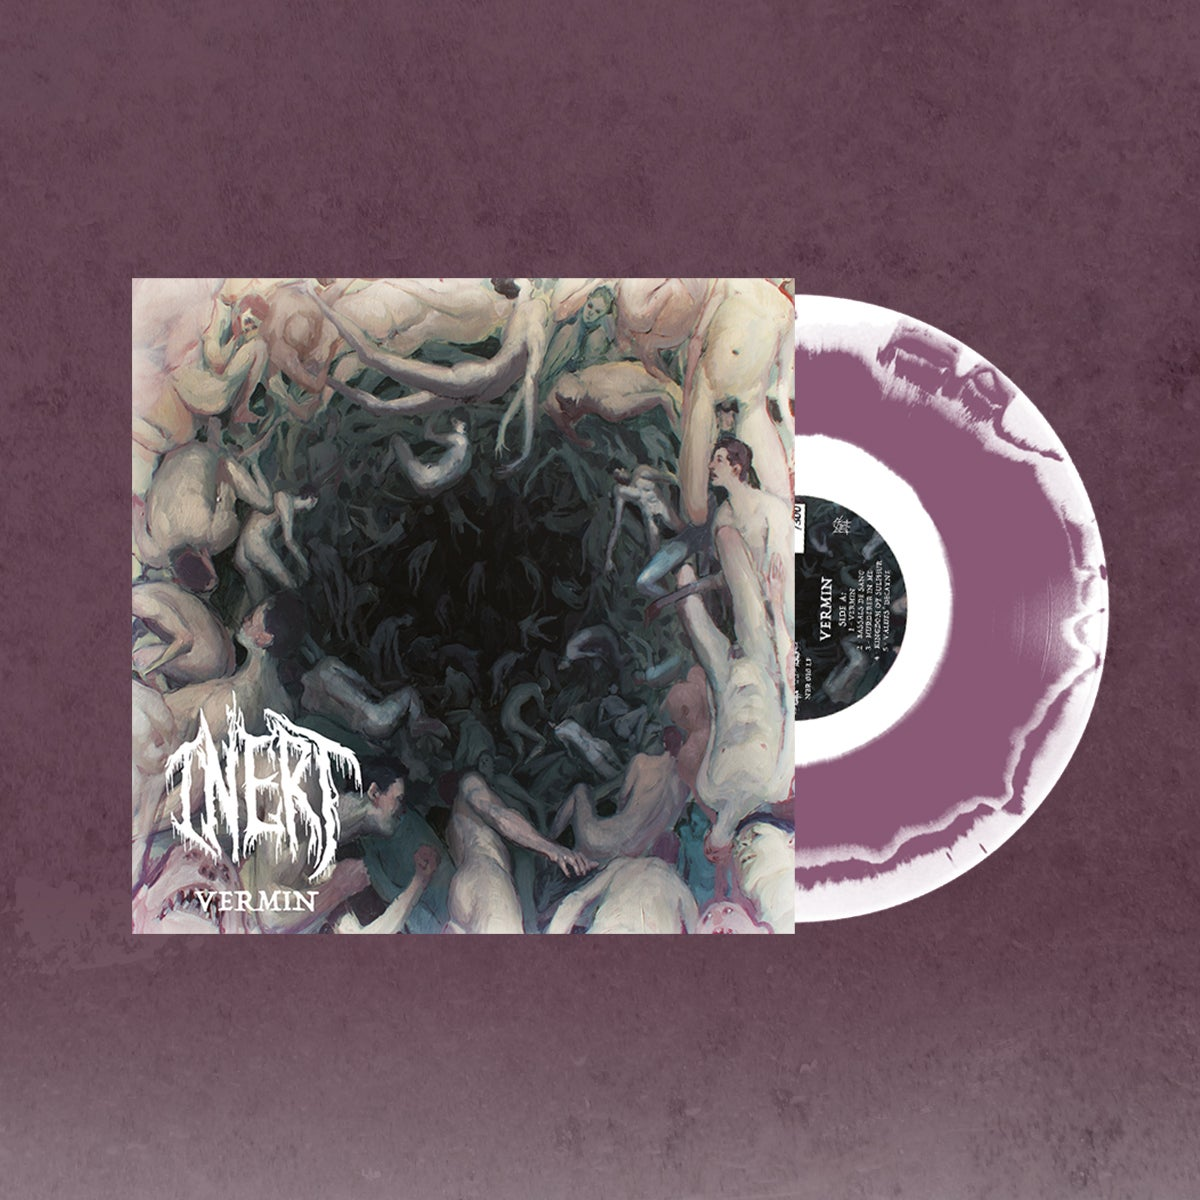 Image of NBR010LP Inert - Vermin Gatefold White / Lilac Swirl lim.to 222 Copies